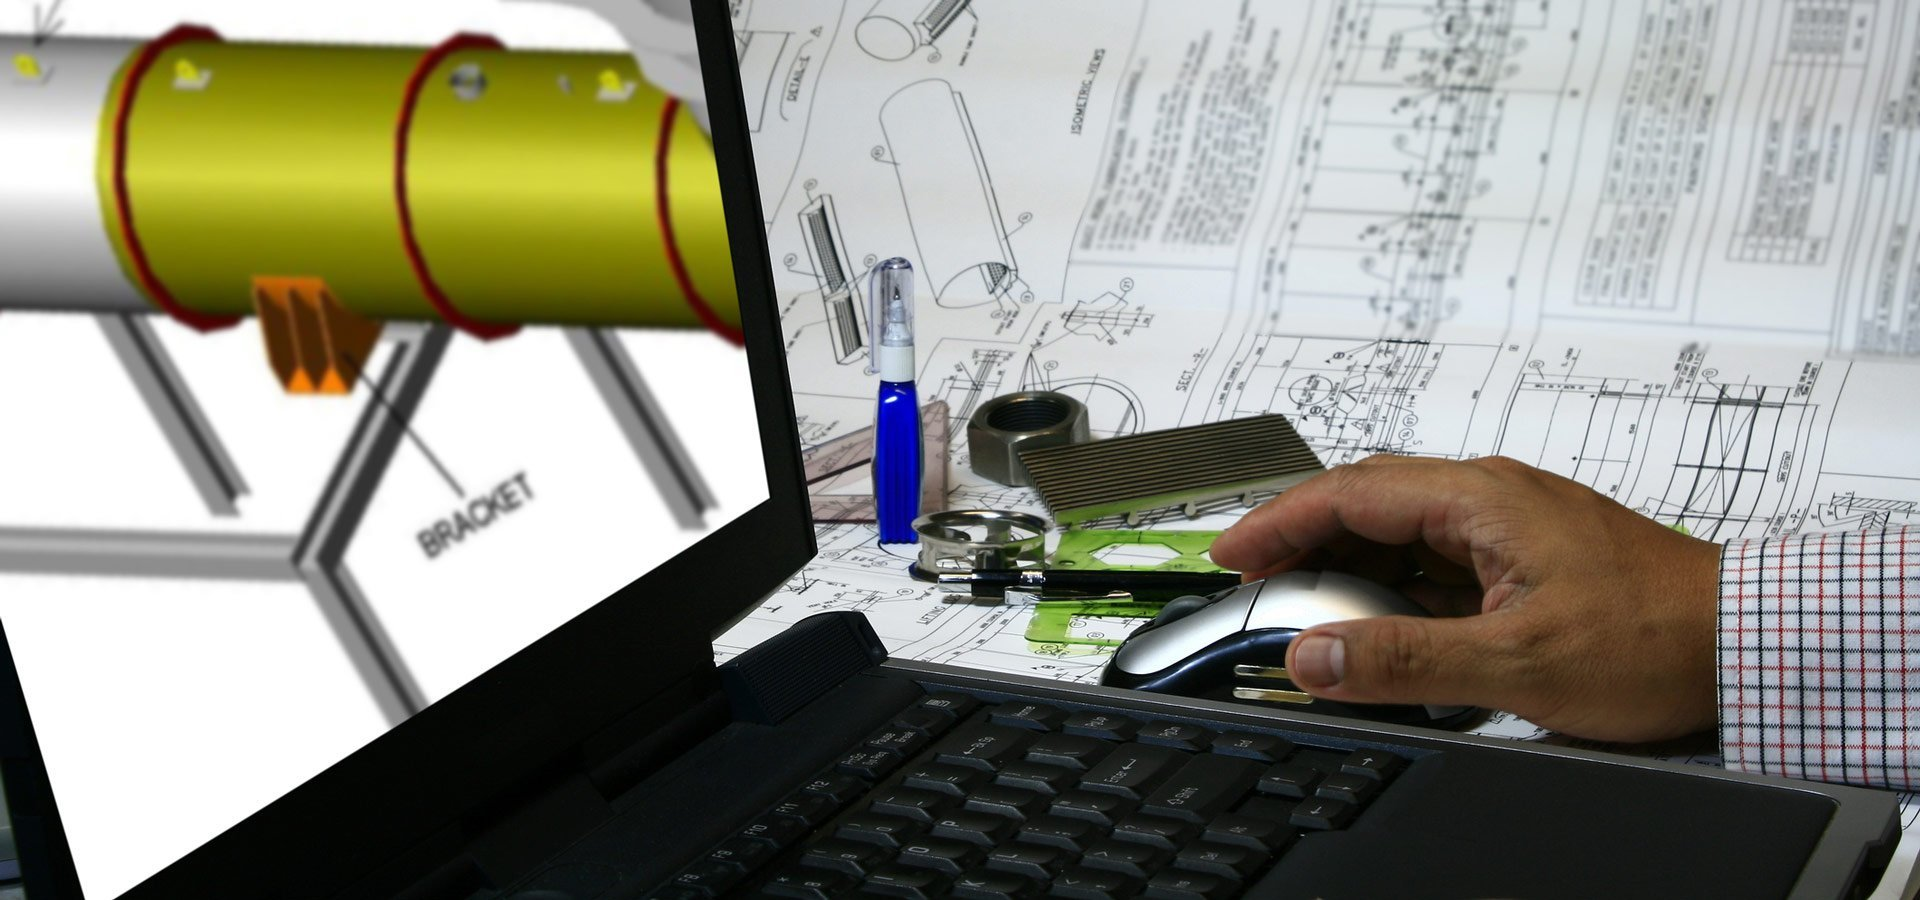 australian locating services an engineer draw his design into the computer using cad design